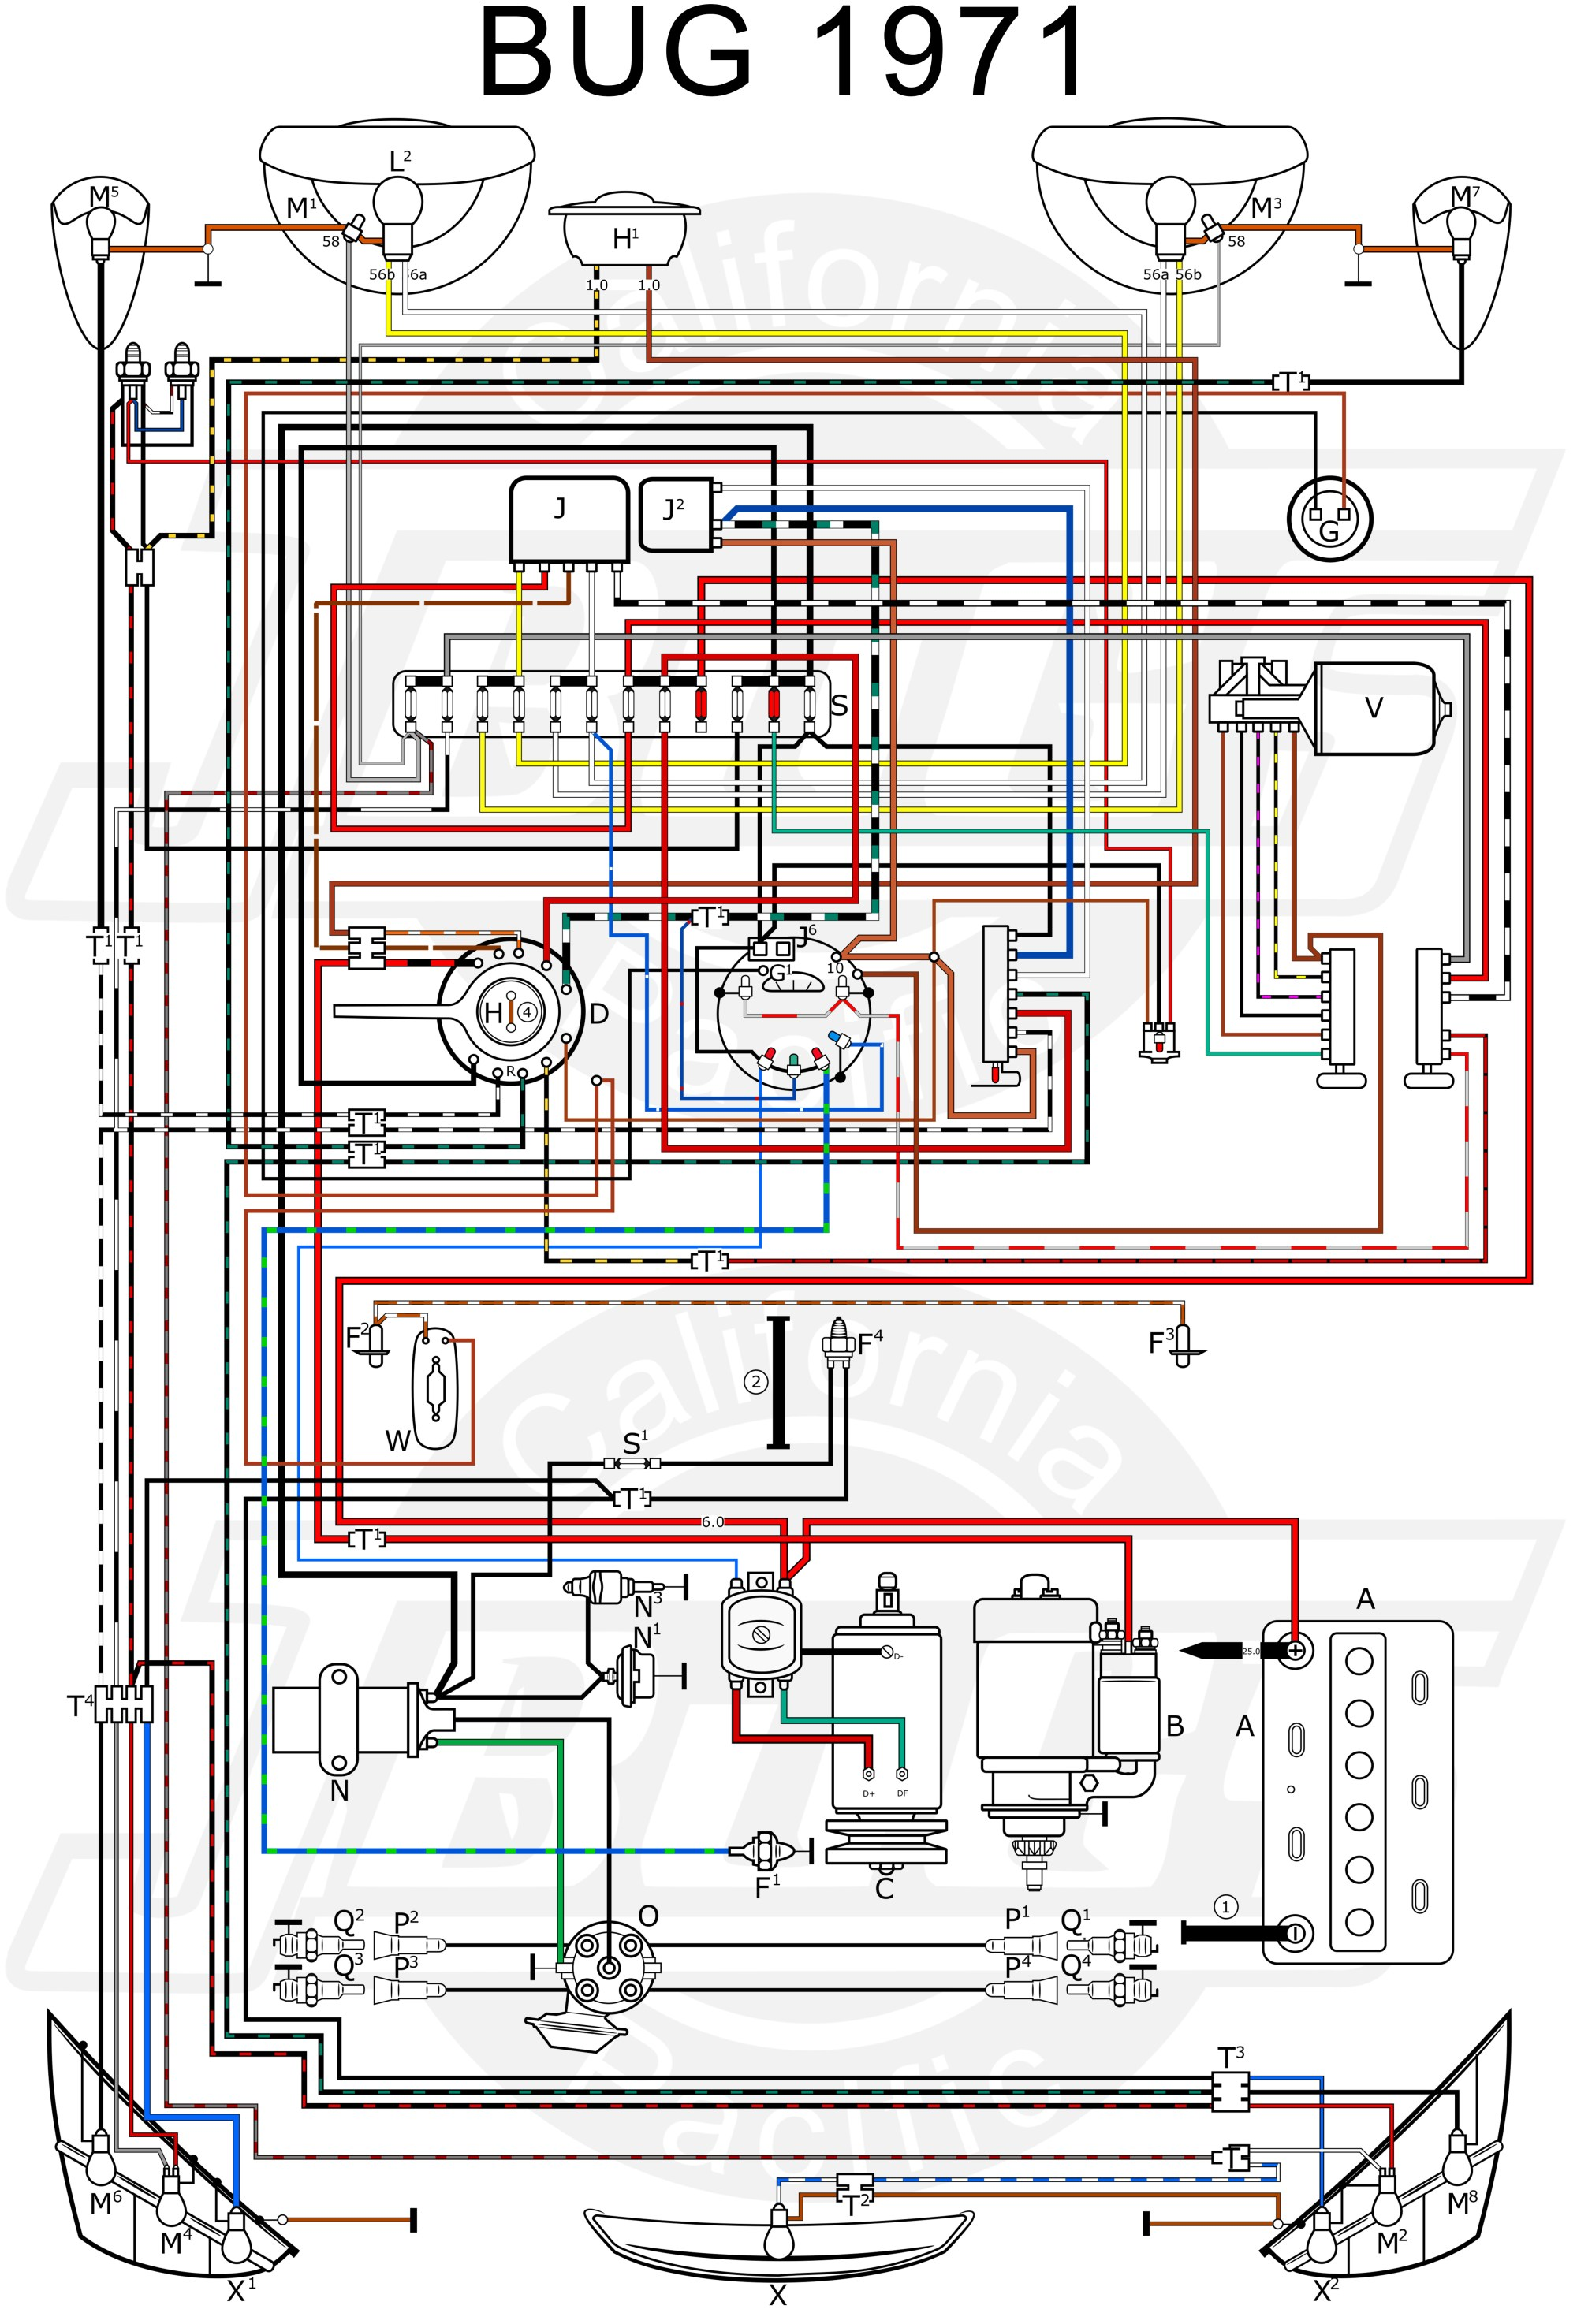 hight resolution of 69 beetle turn signal wiring schematic real wiring diagram u2022 rh mcmxliv co signal stat 900